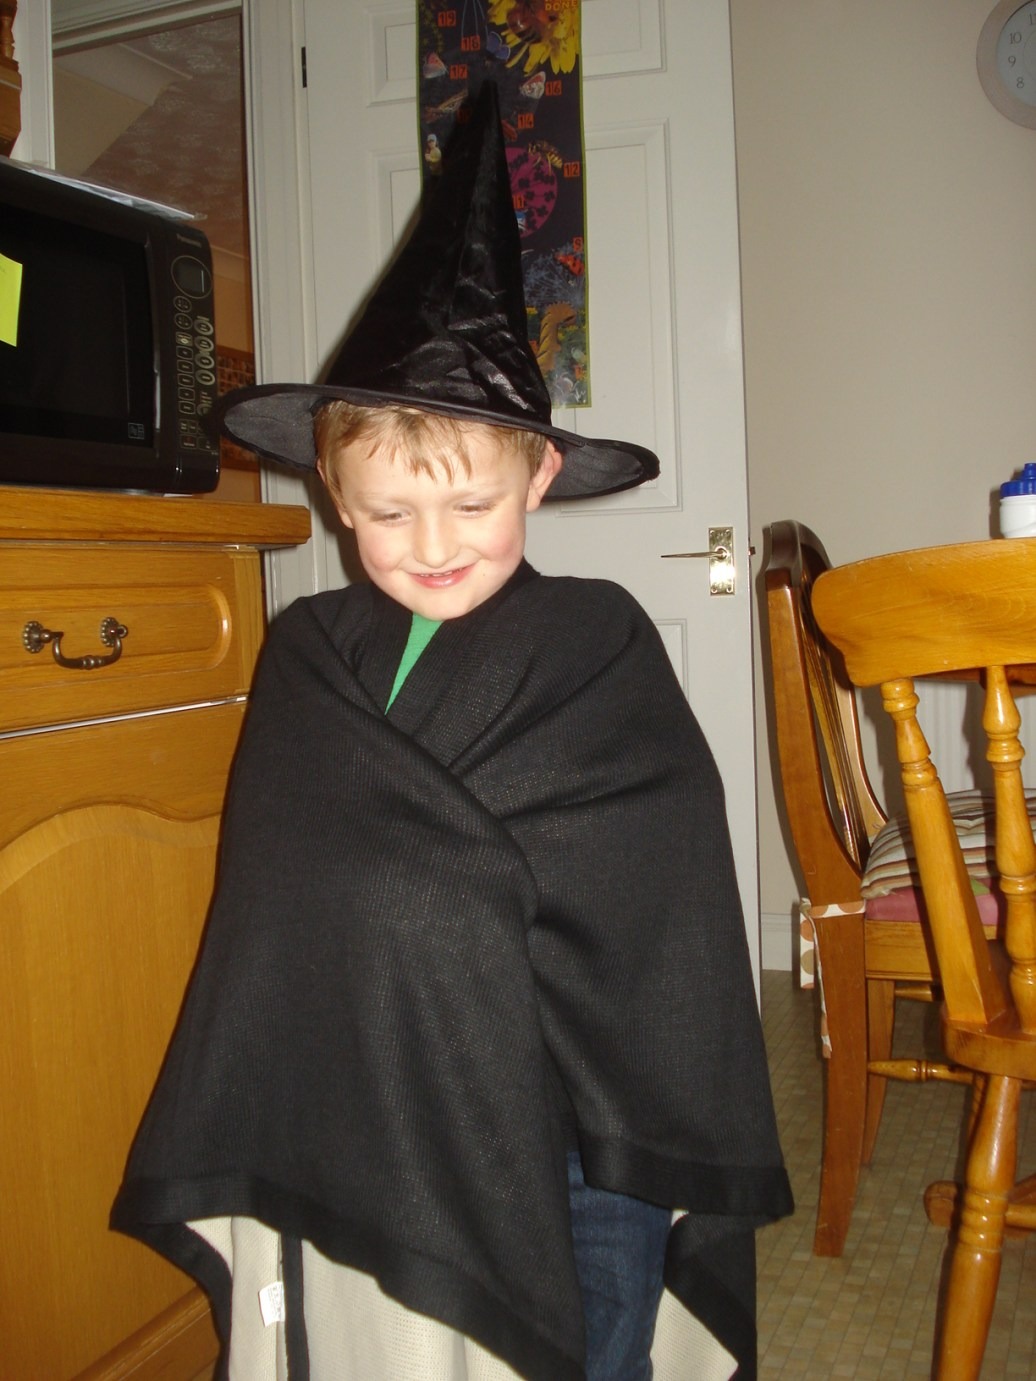 before he puts a spell on Mummy!